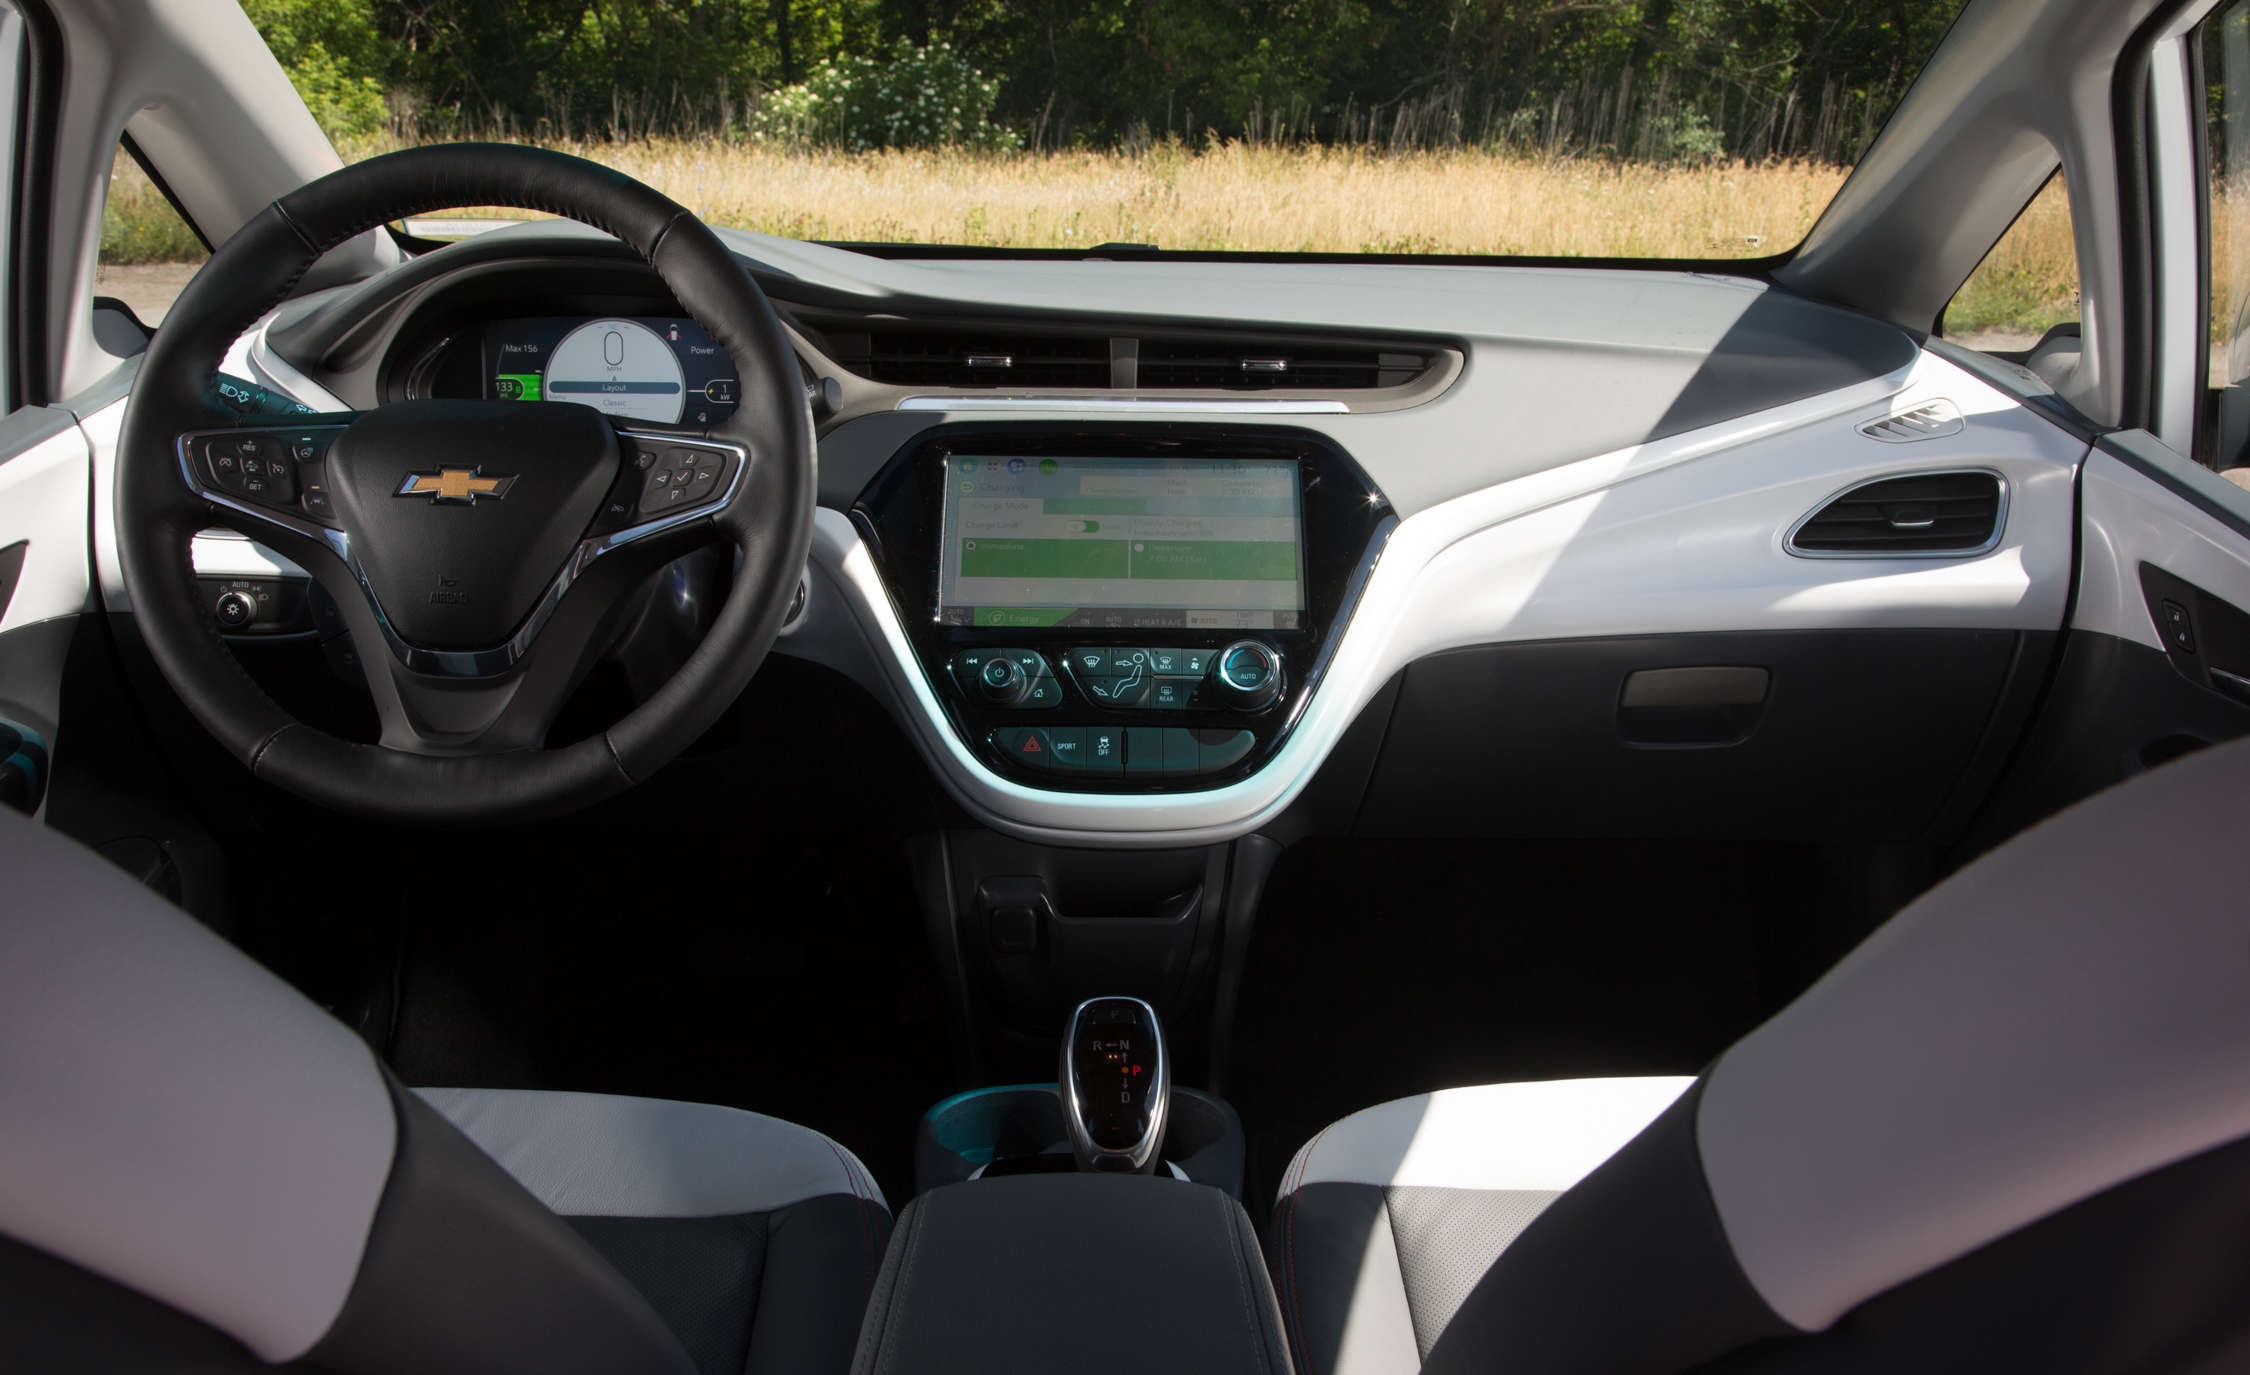 2017 Chevrolet Bolt Ev Interior Dashboard (View 7 of 12)